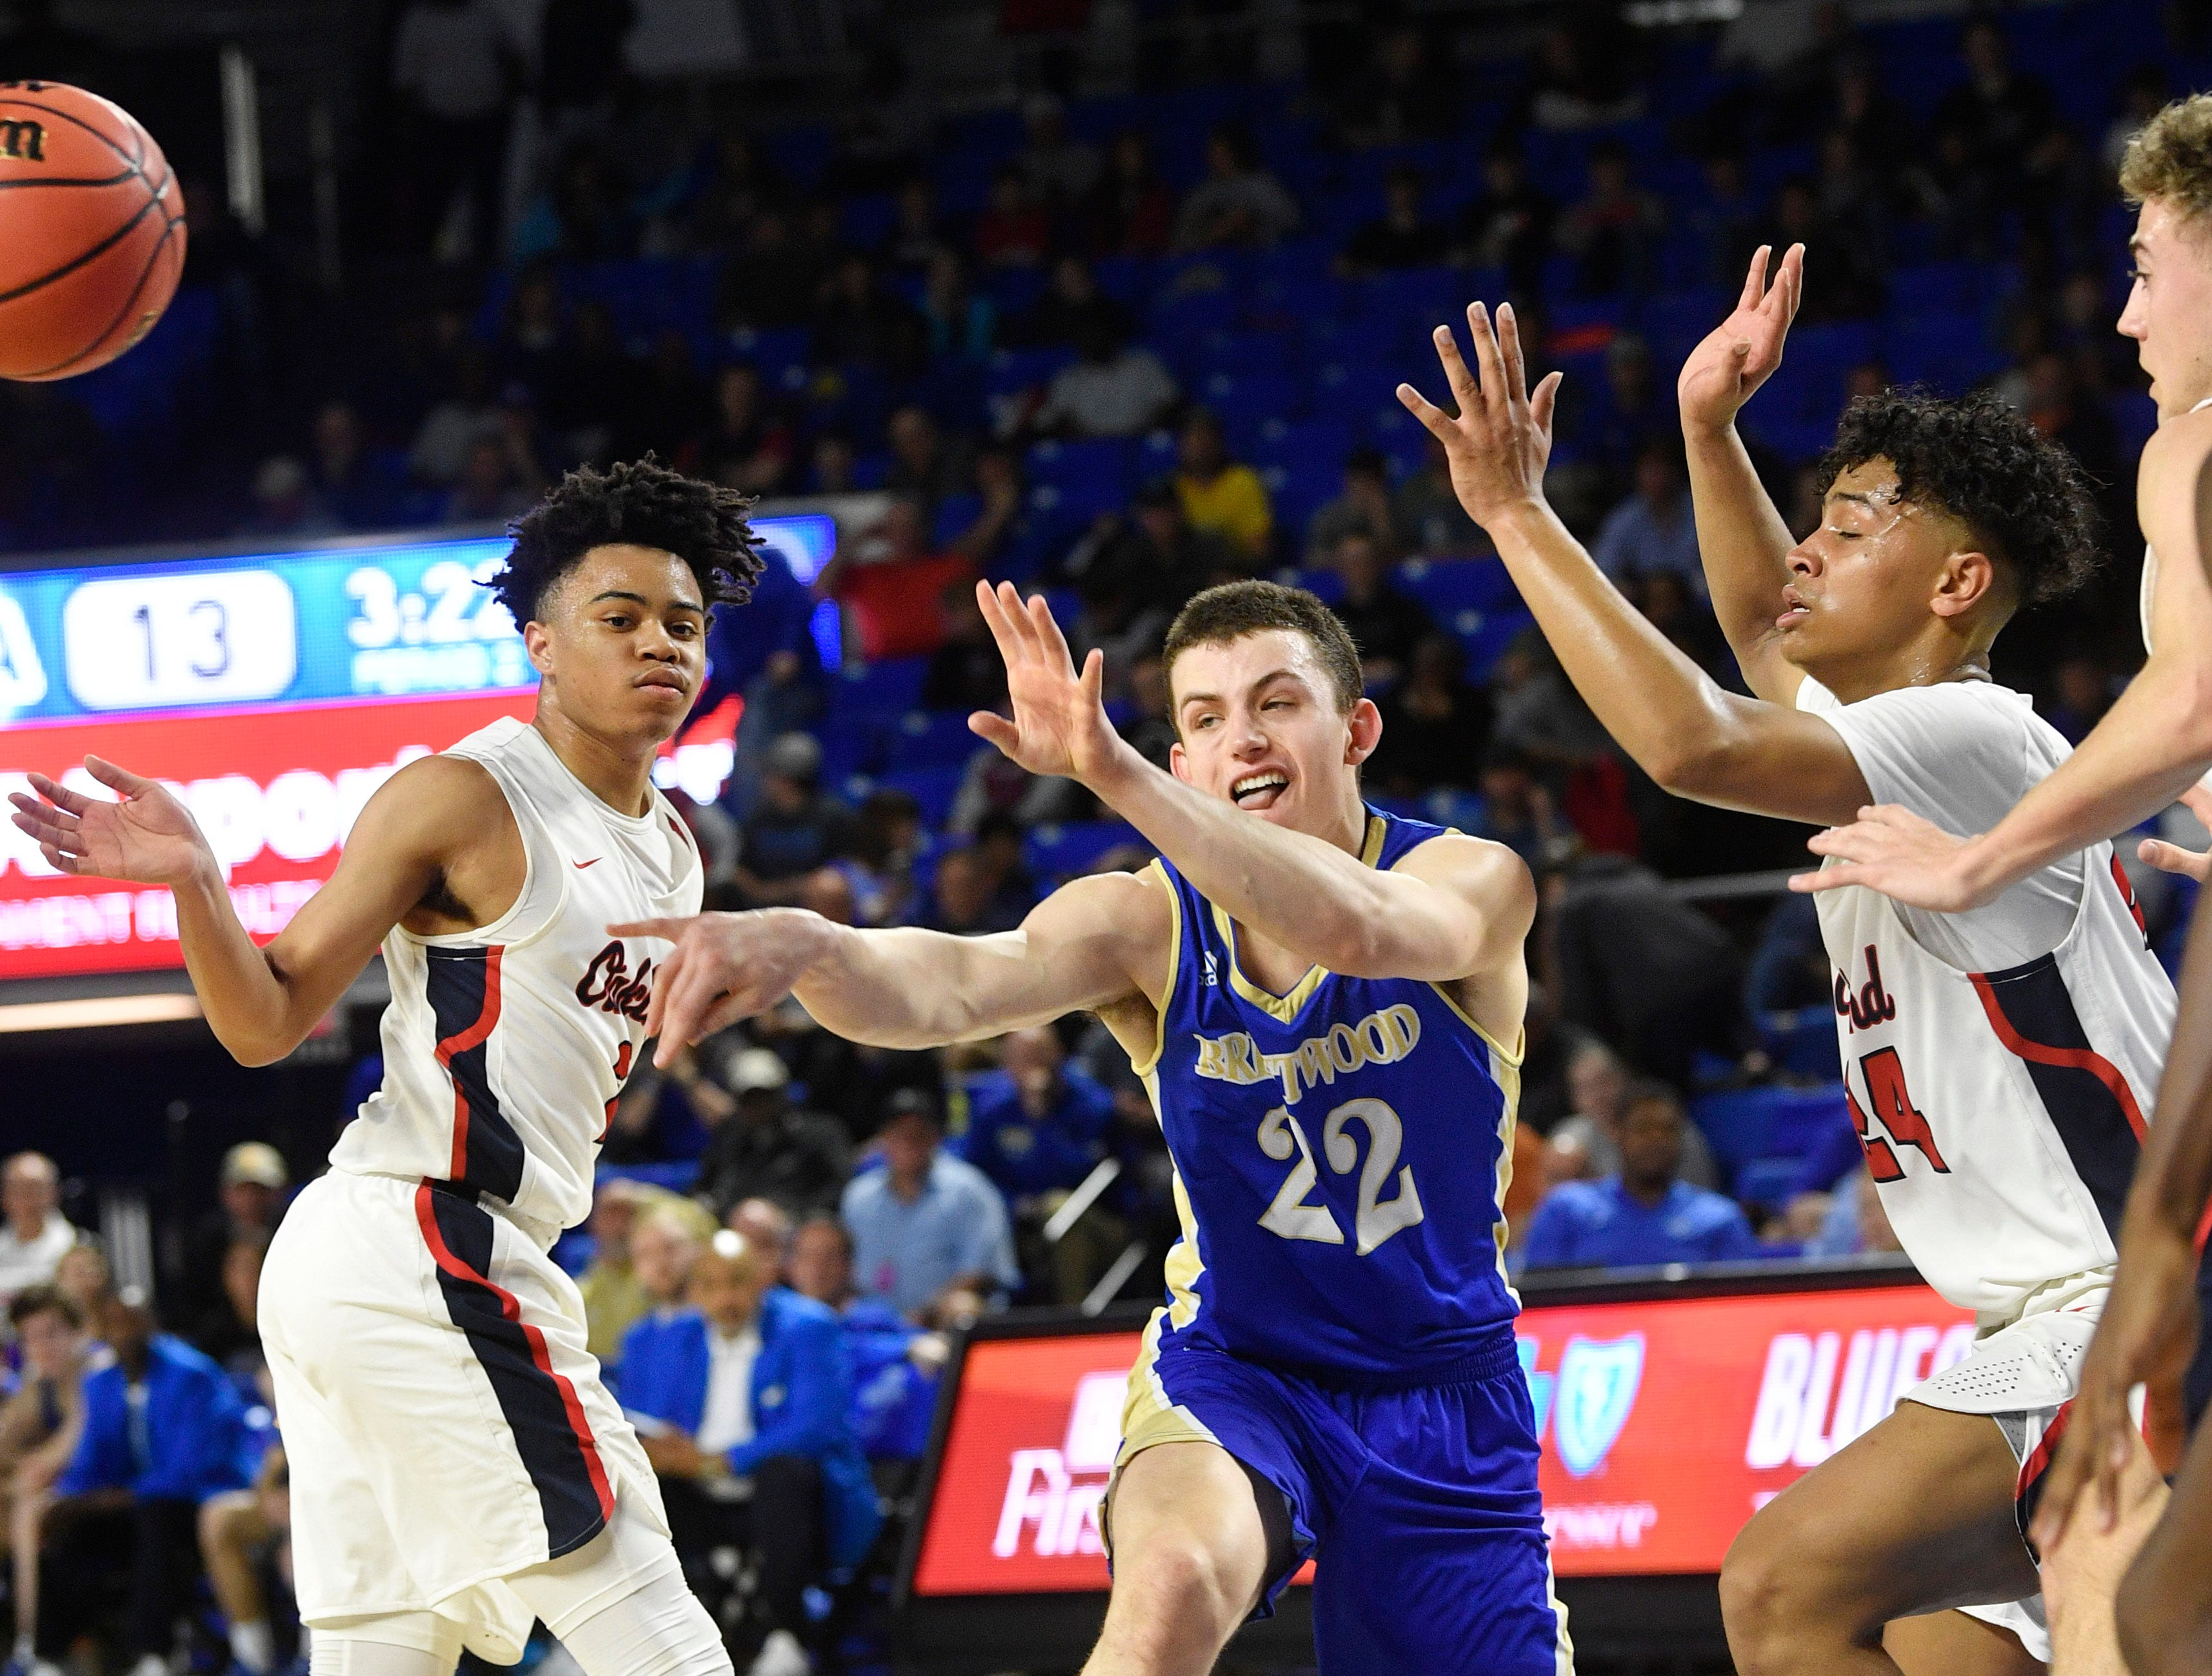 Brentwood's Harry Lackey (22) passes off as Brentwood plays Oaklandin the TSSAA Class AAA quarterfinals  Thursday, March 14, 2019, in Murfreesboro, Tenn.